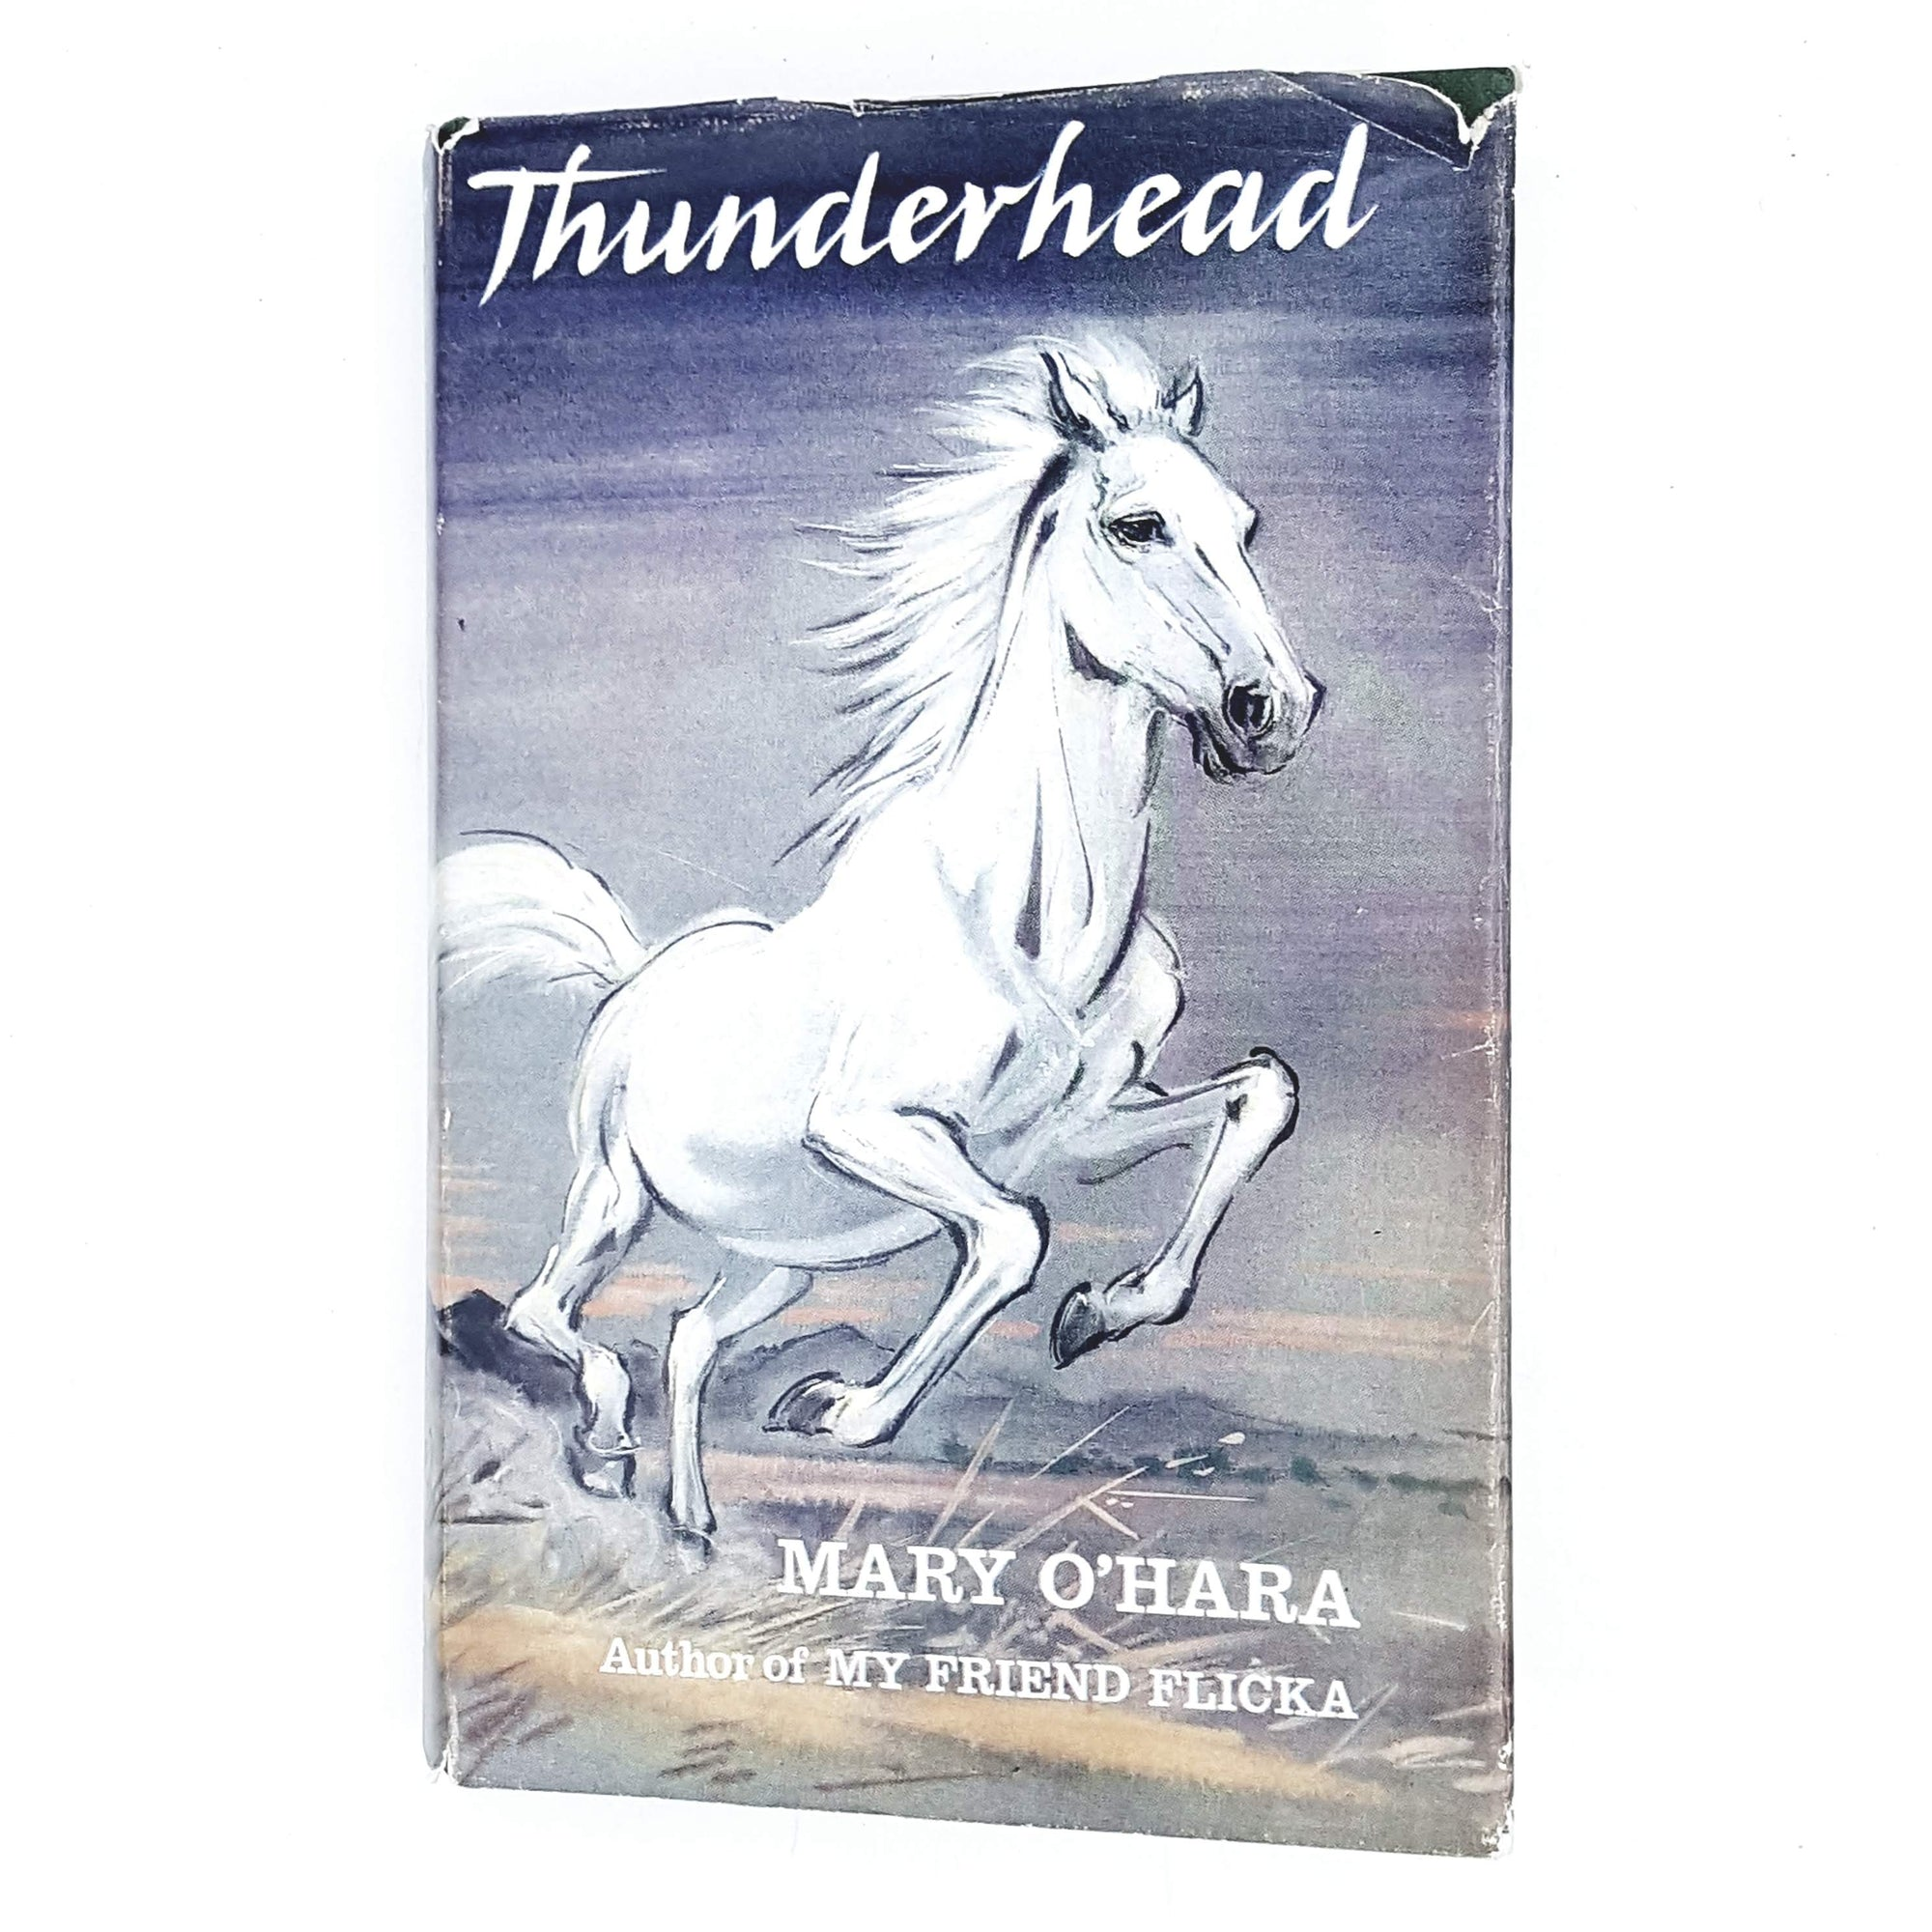 horse-mary-ohara-vintage-book-blue